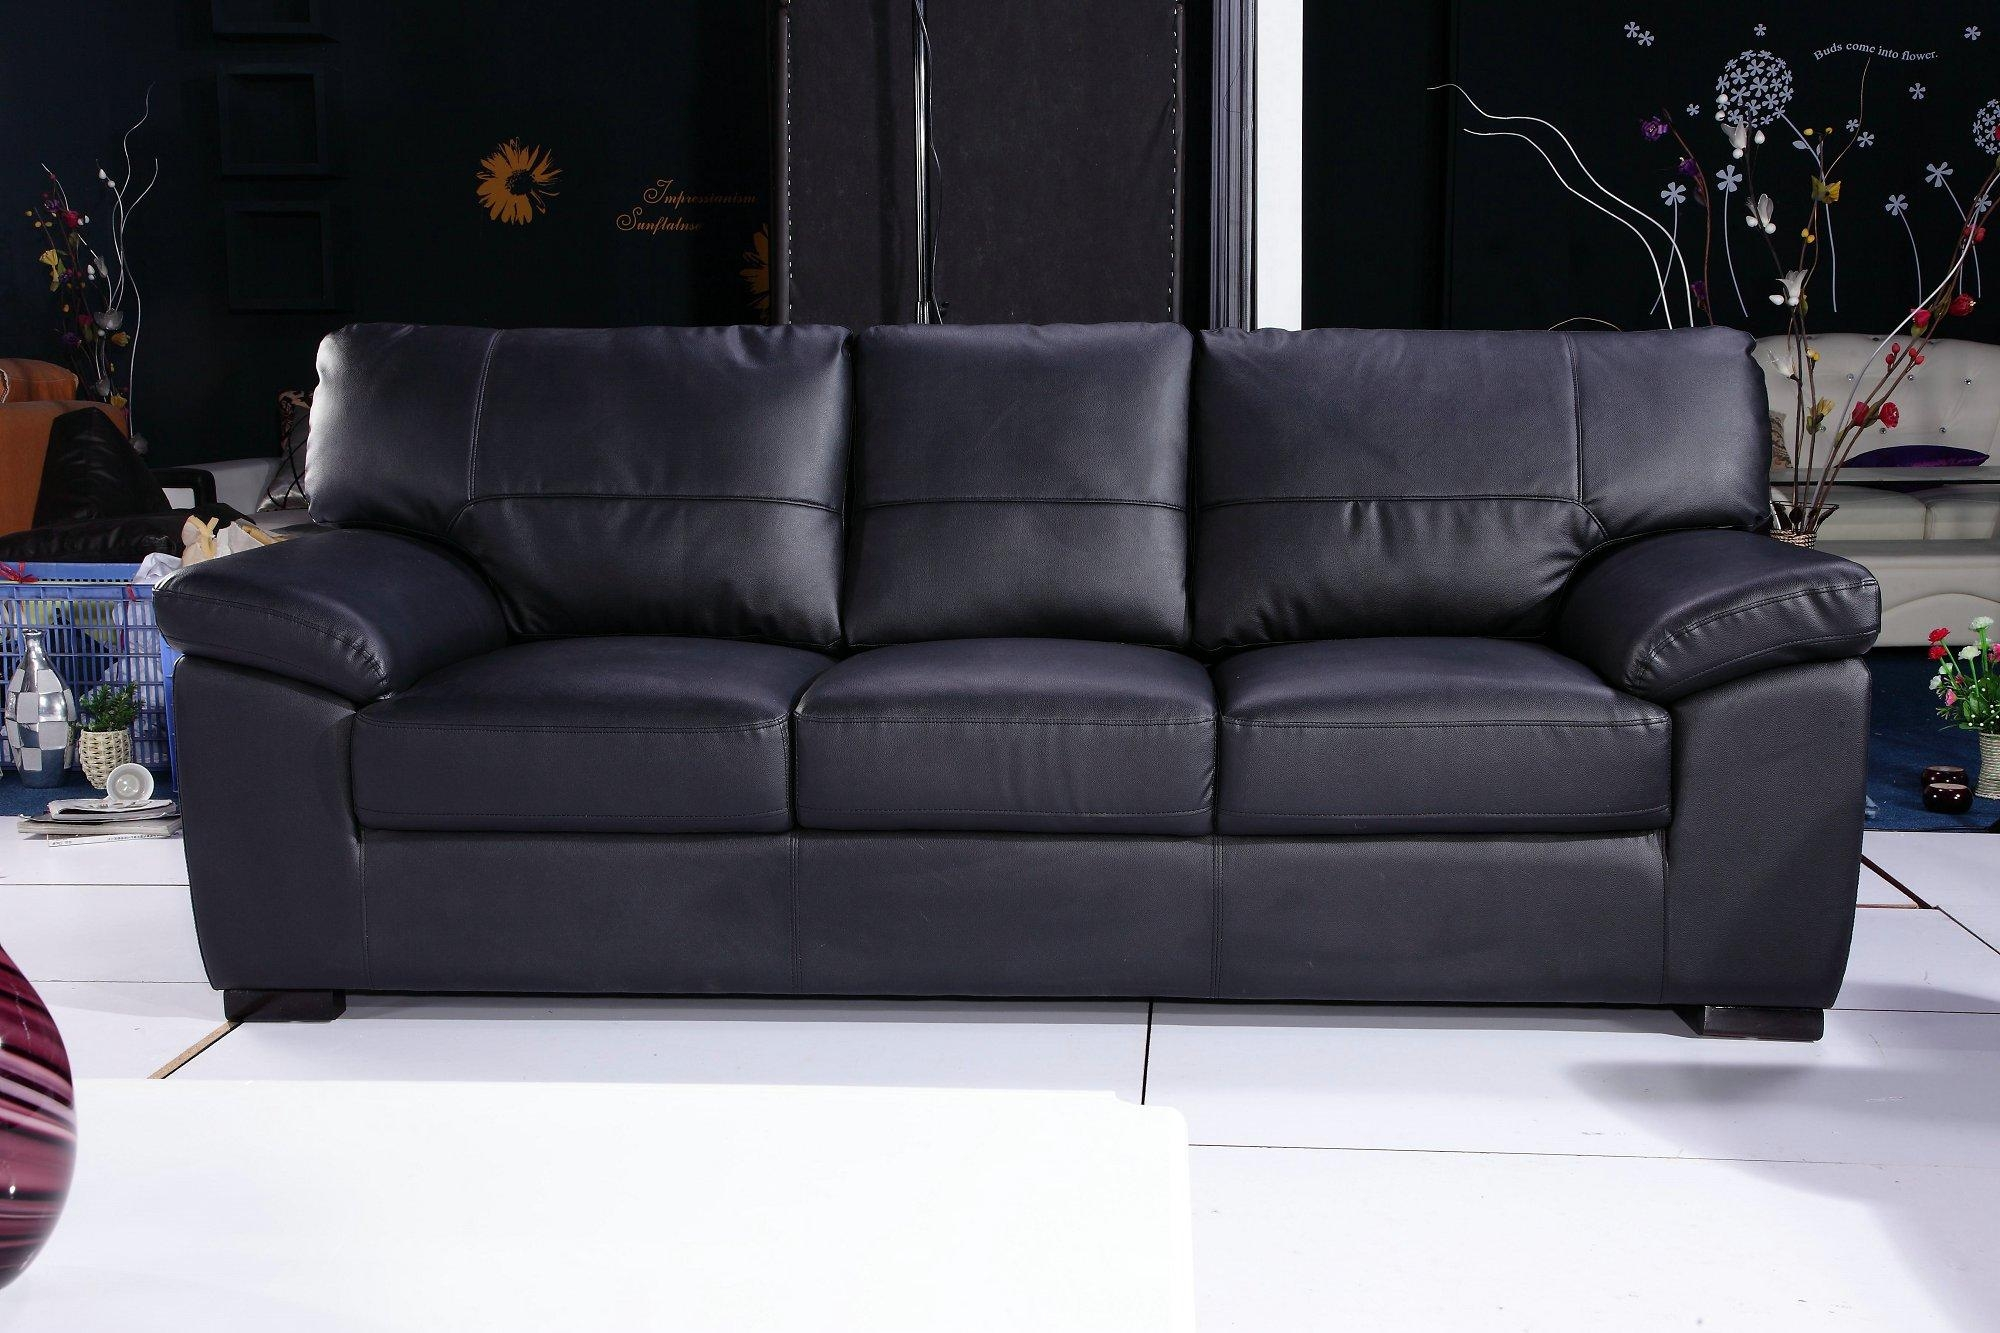 3 Seater Leather Sofas – Aftdth Inside 3 Seater Leather Sofas (Image 2 of 20)